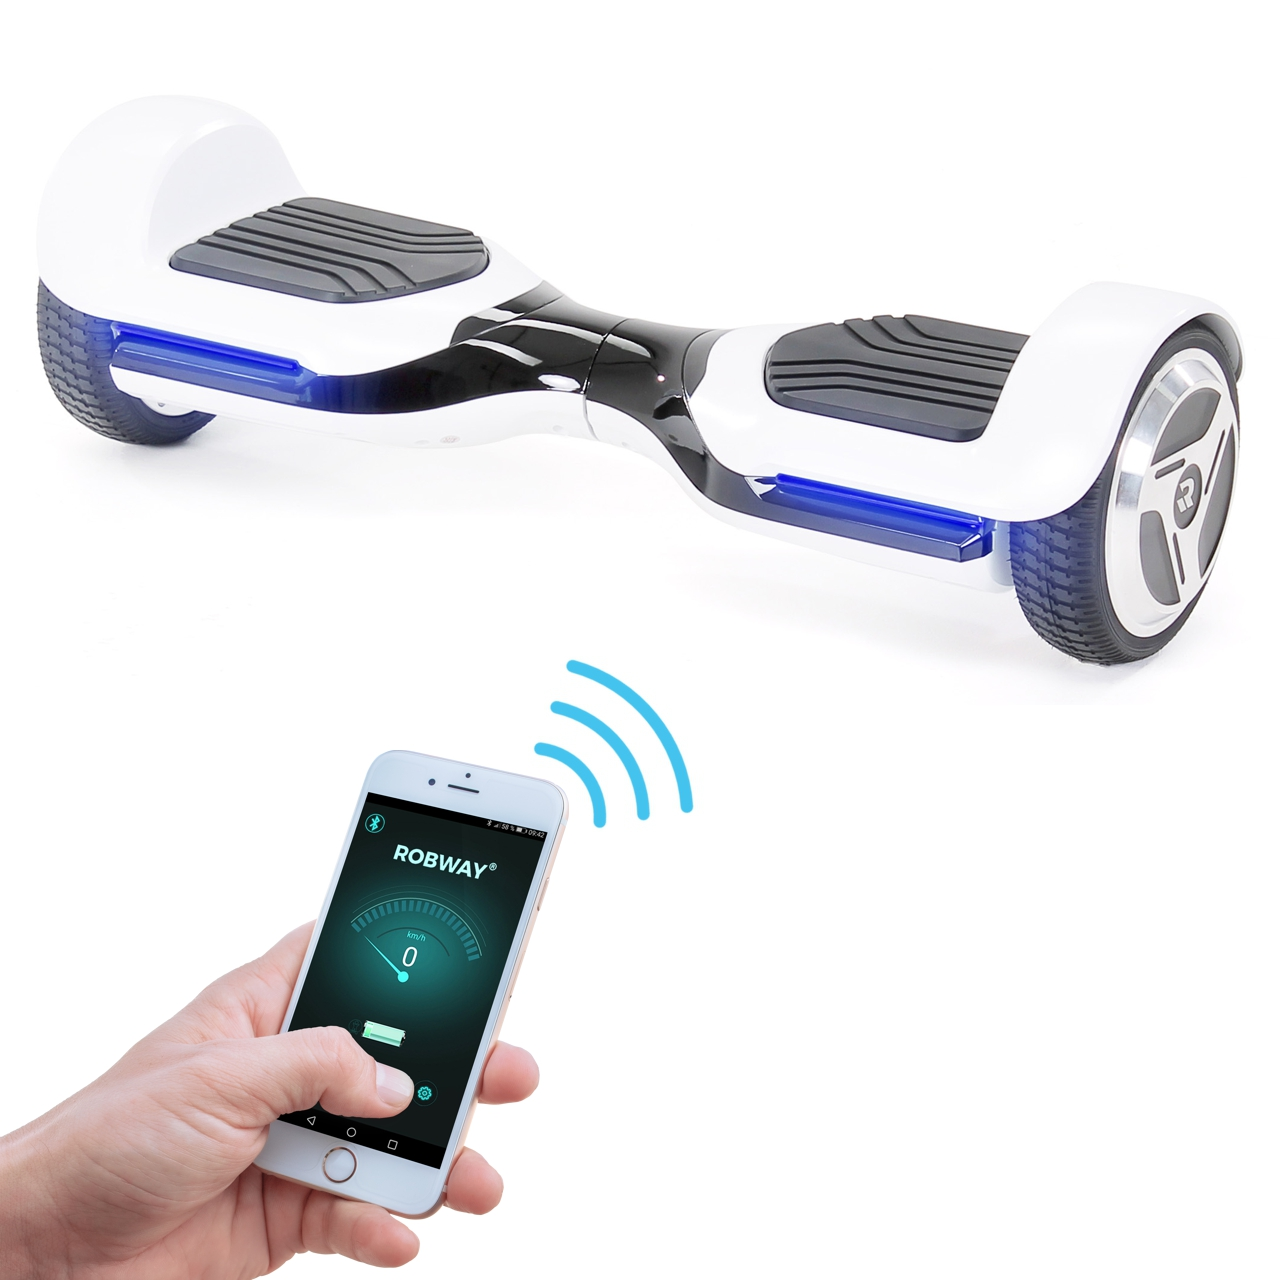 robway rg1 self balancing scooter hoverboards von. Black Bedroom Furniture Sets. Home Design Ideas